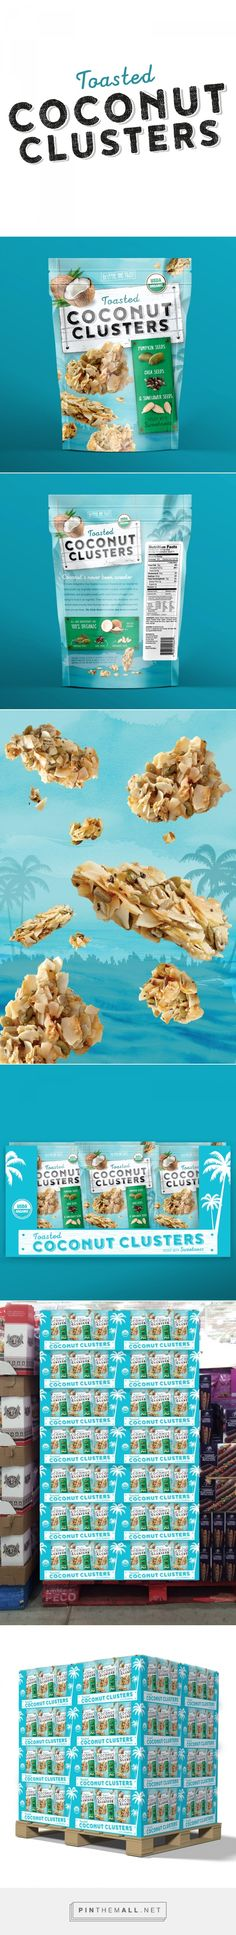 Toasted Coconut Clusters  - Packaging of the World - Creative Package Design Gallery - http://www.packagingoftheworld.com/2016/07/toasted-coconut-clusters.html